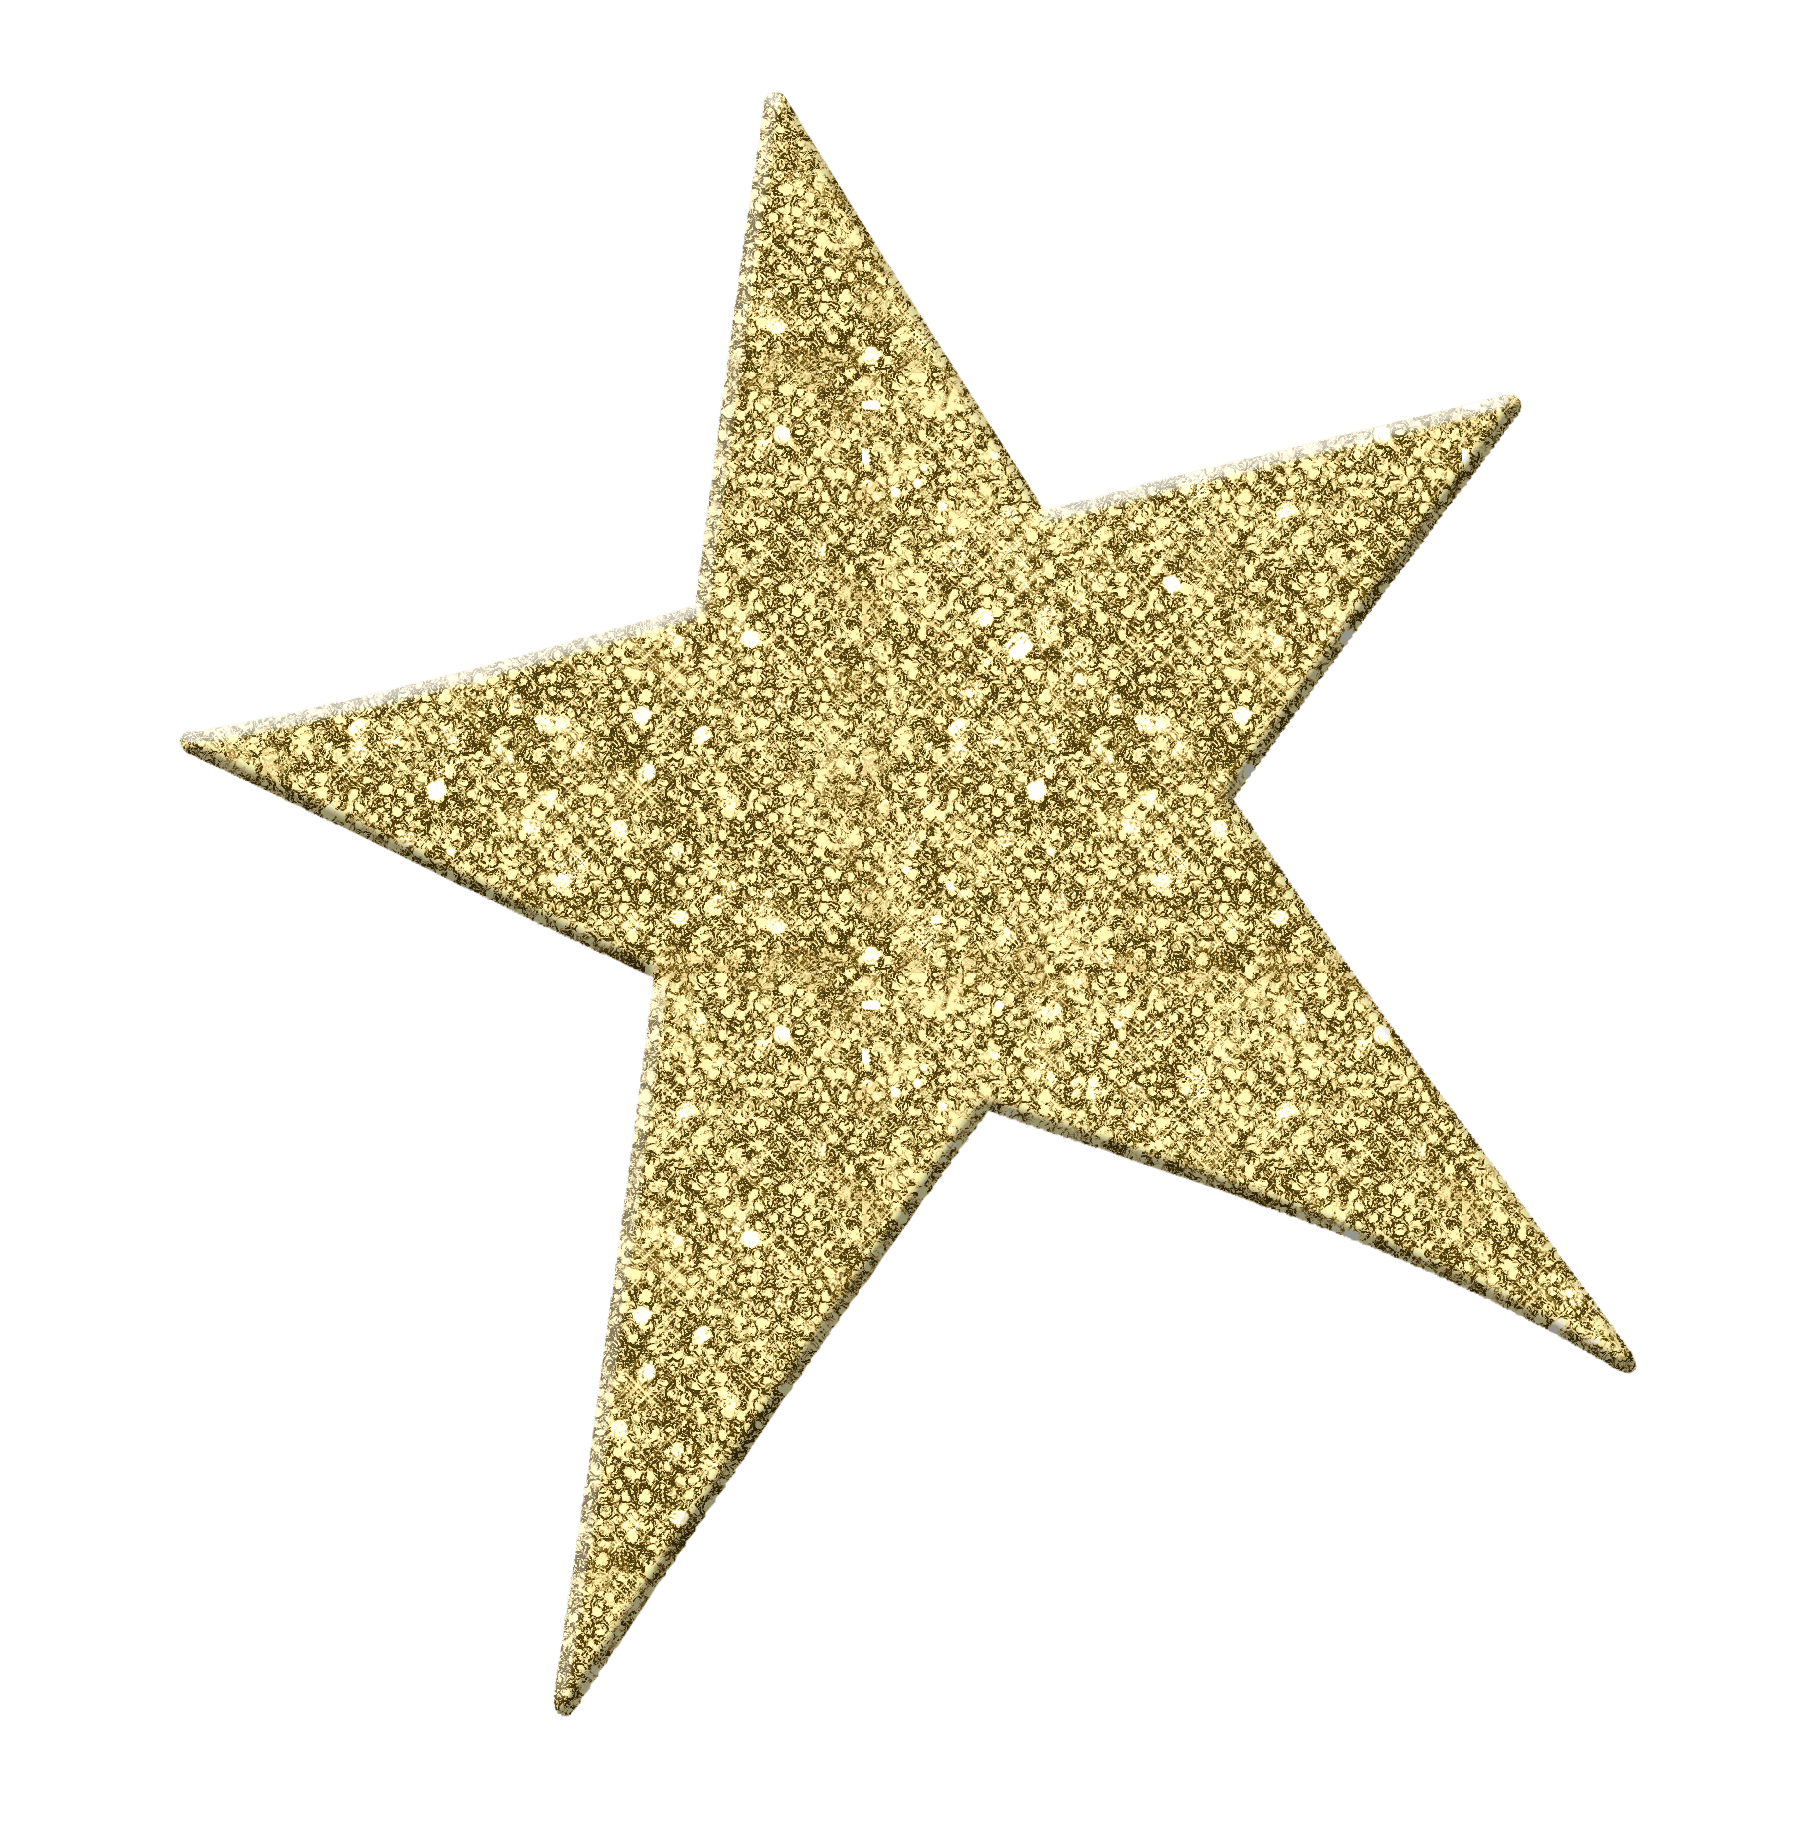 Star rating clipart clipart download 5:5 Sparkling Gold Stars Rating transparent PNG - StickPNG clipart download